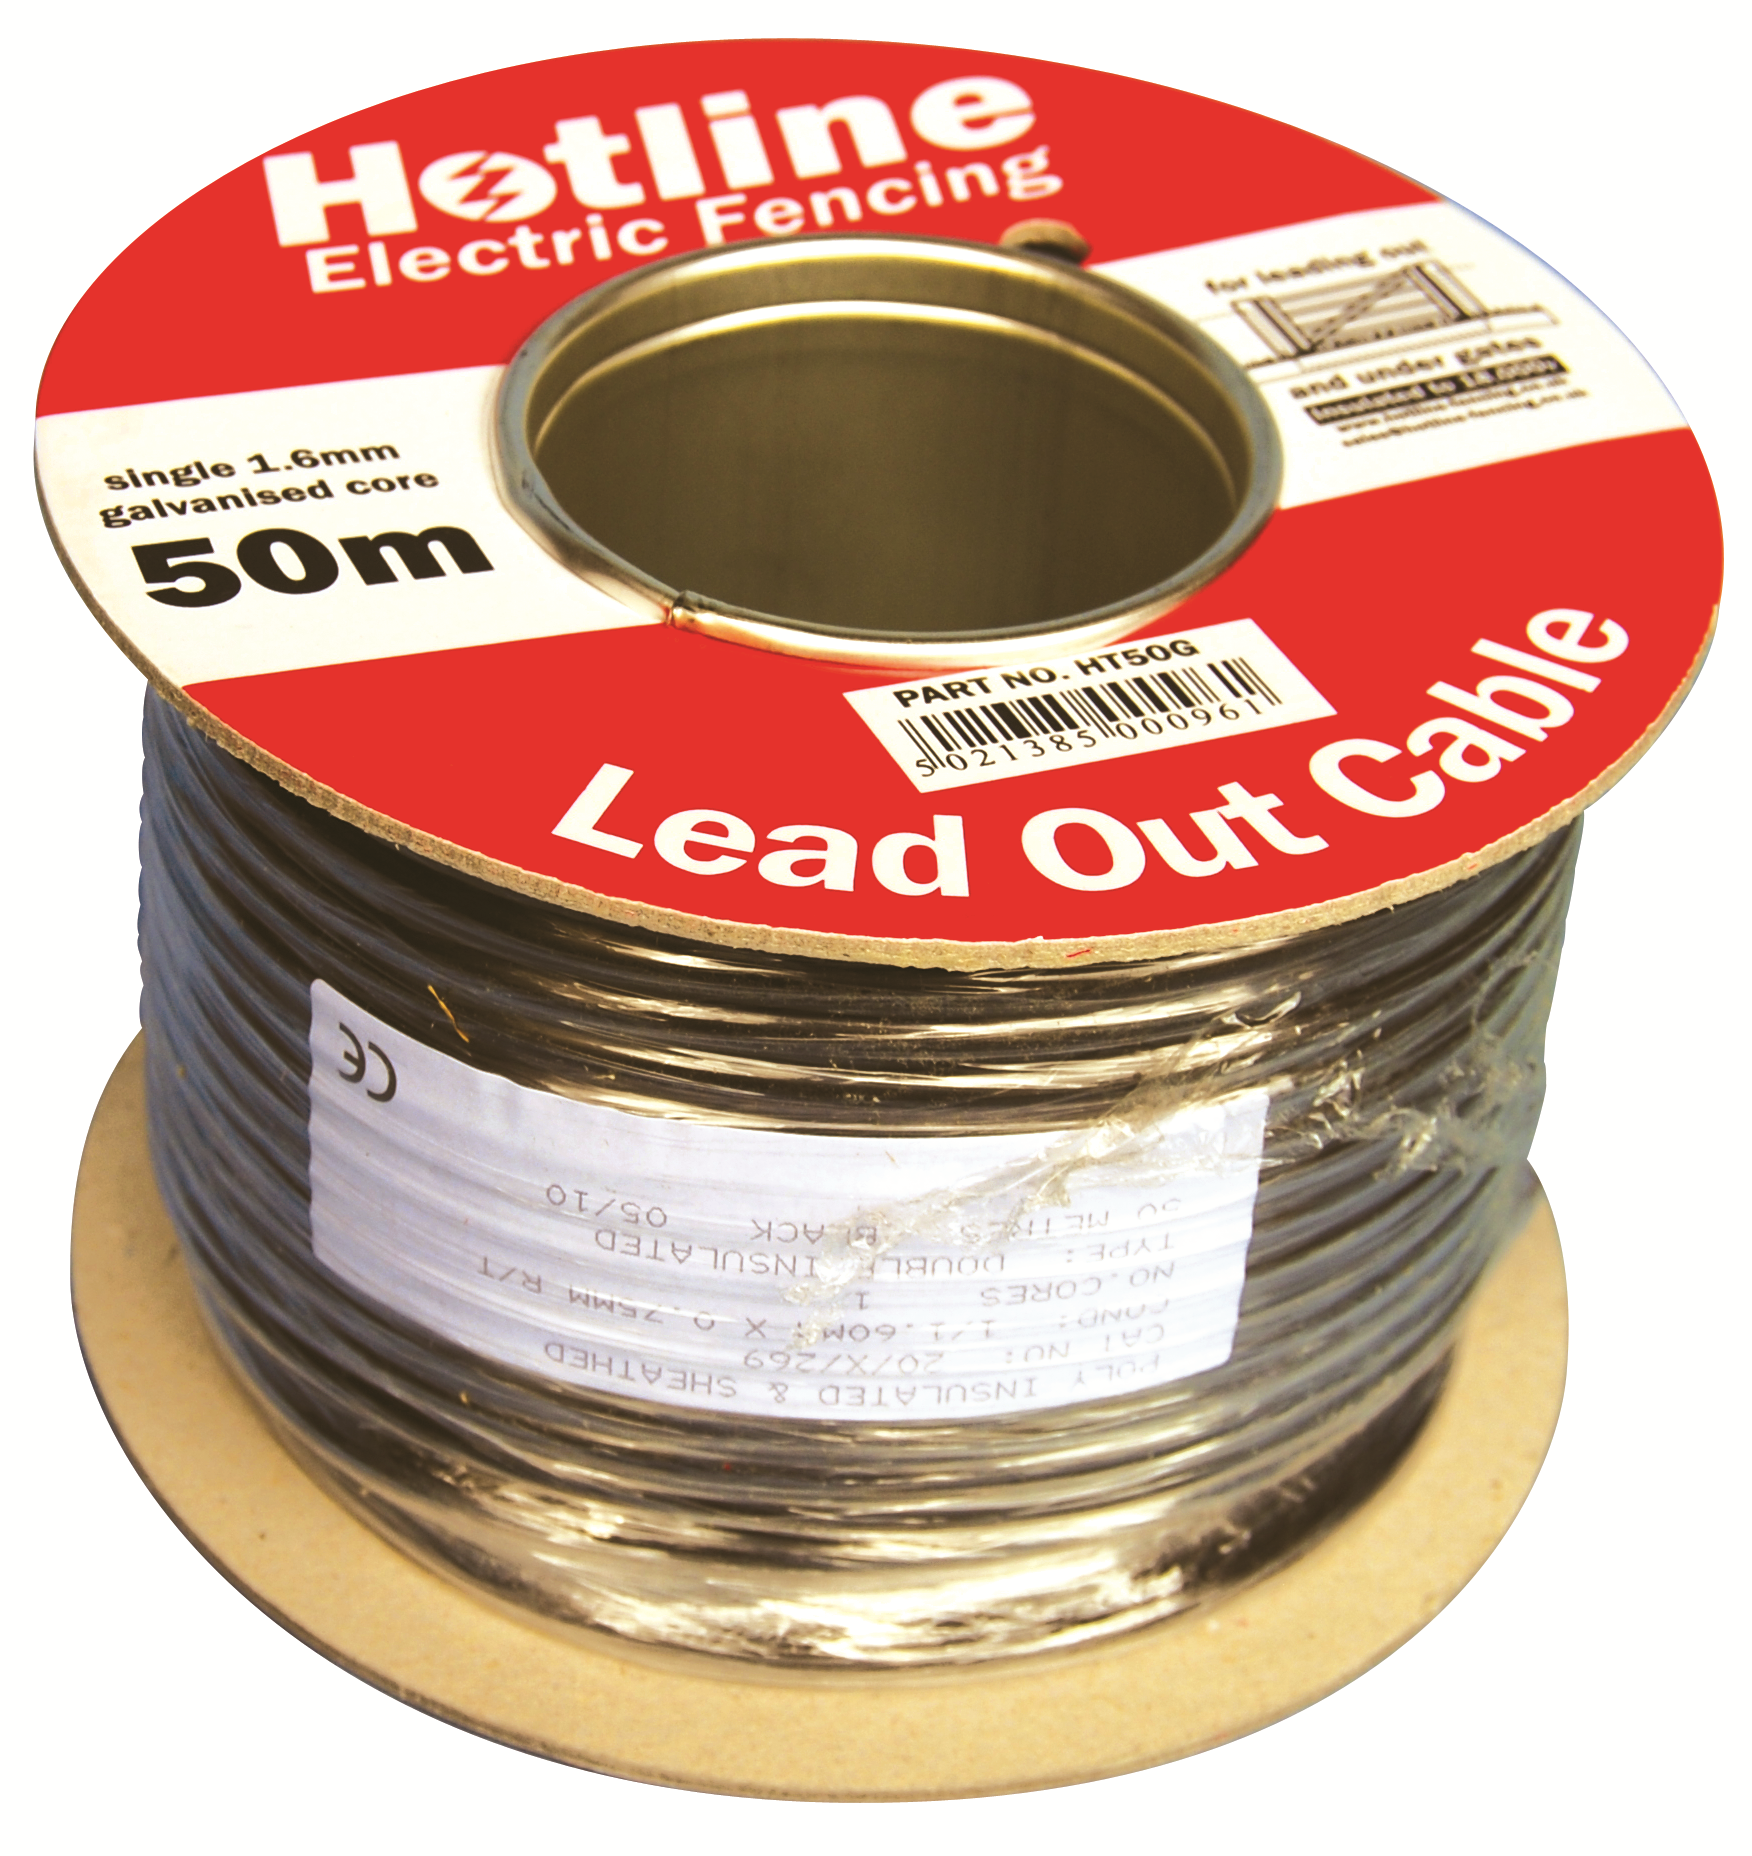 25m Lead Out Cable (HT25/G)